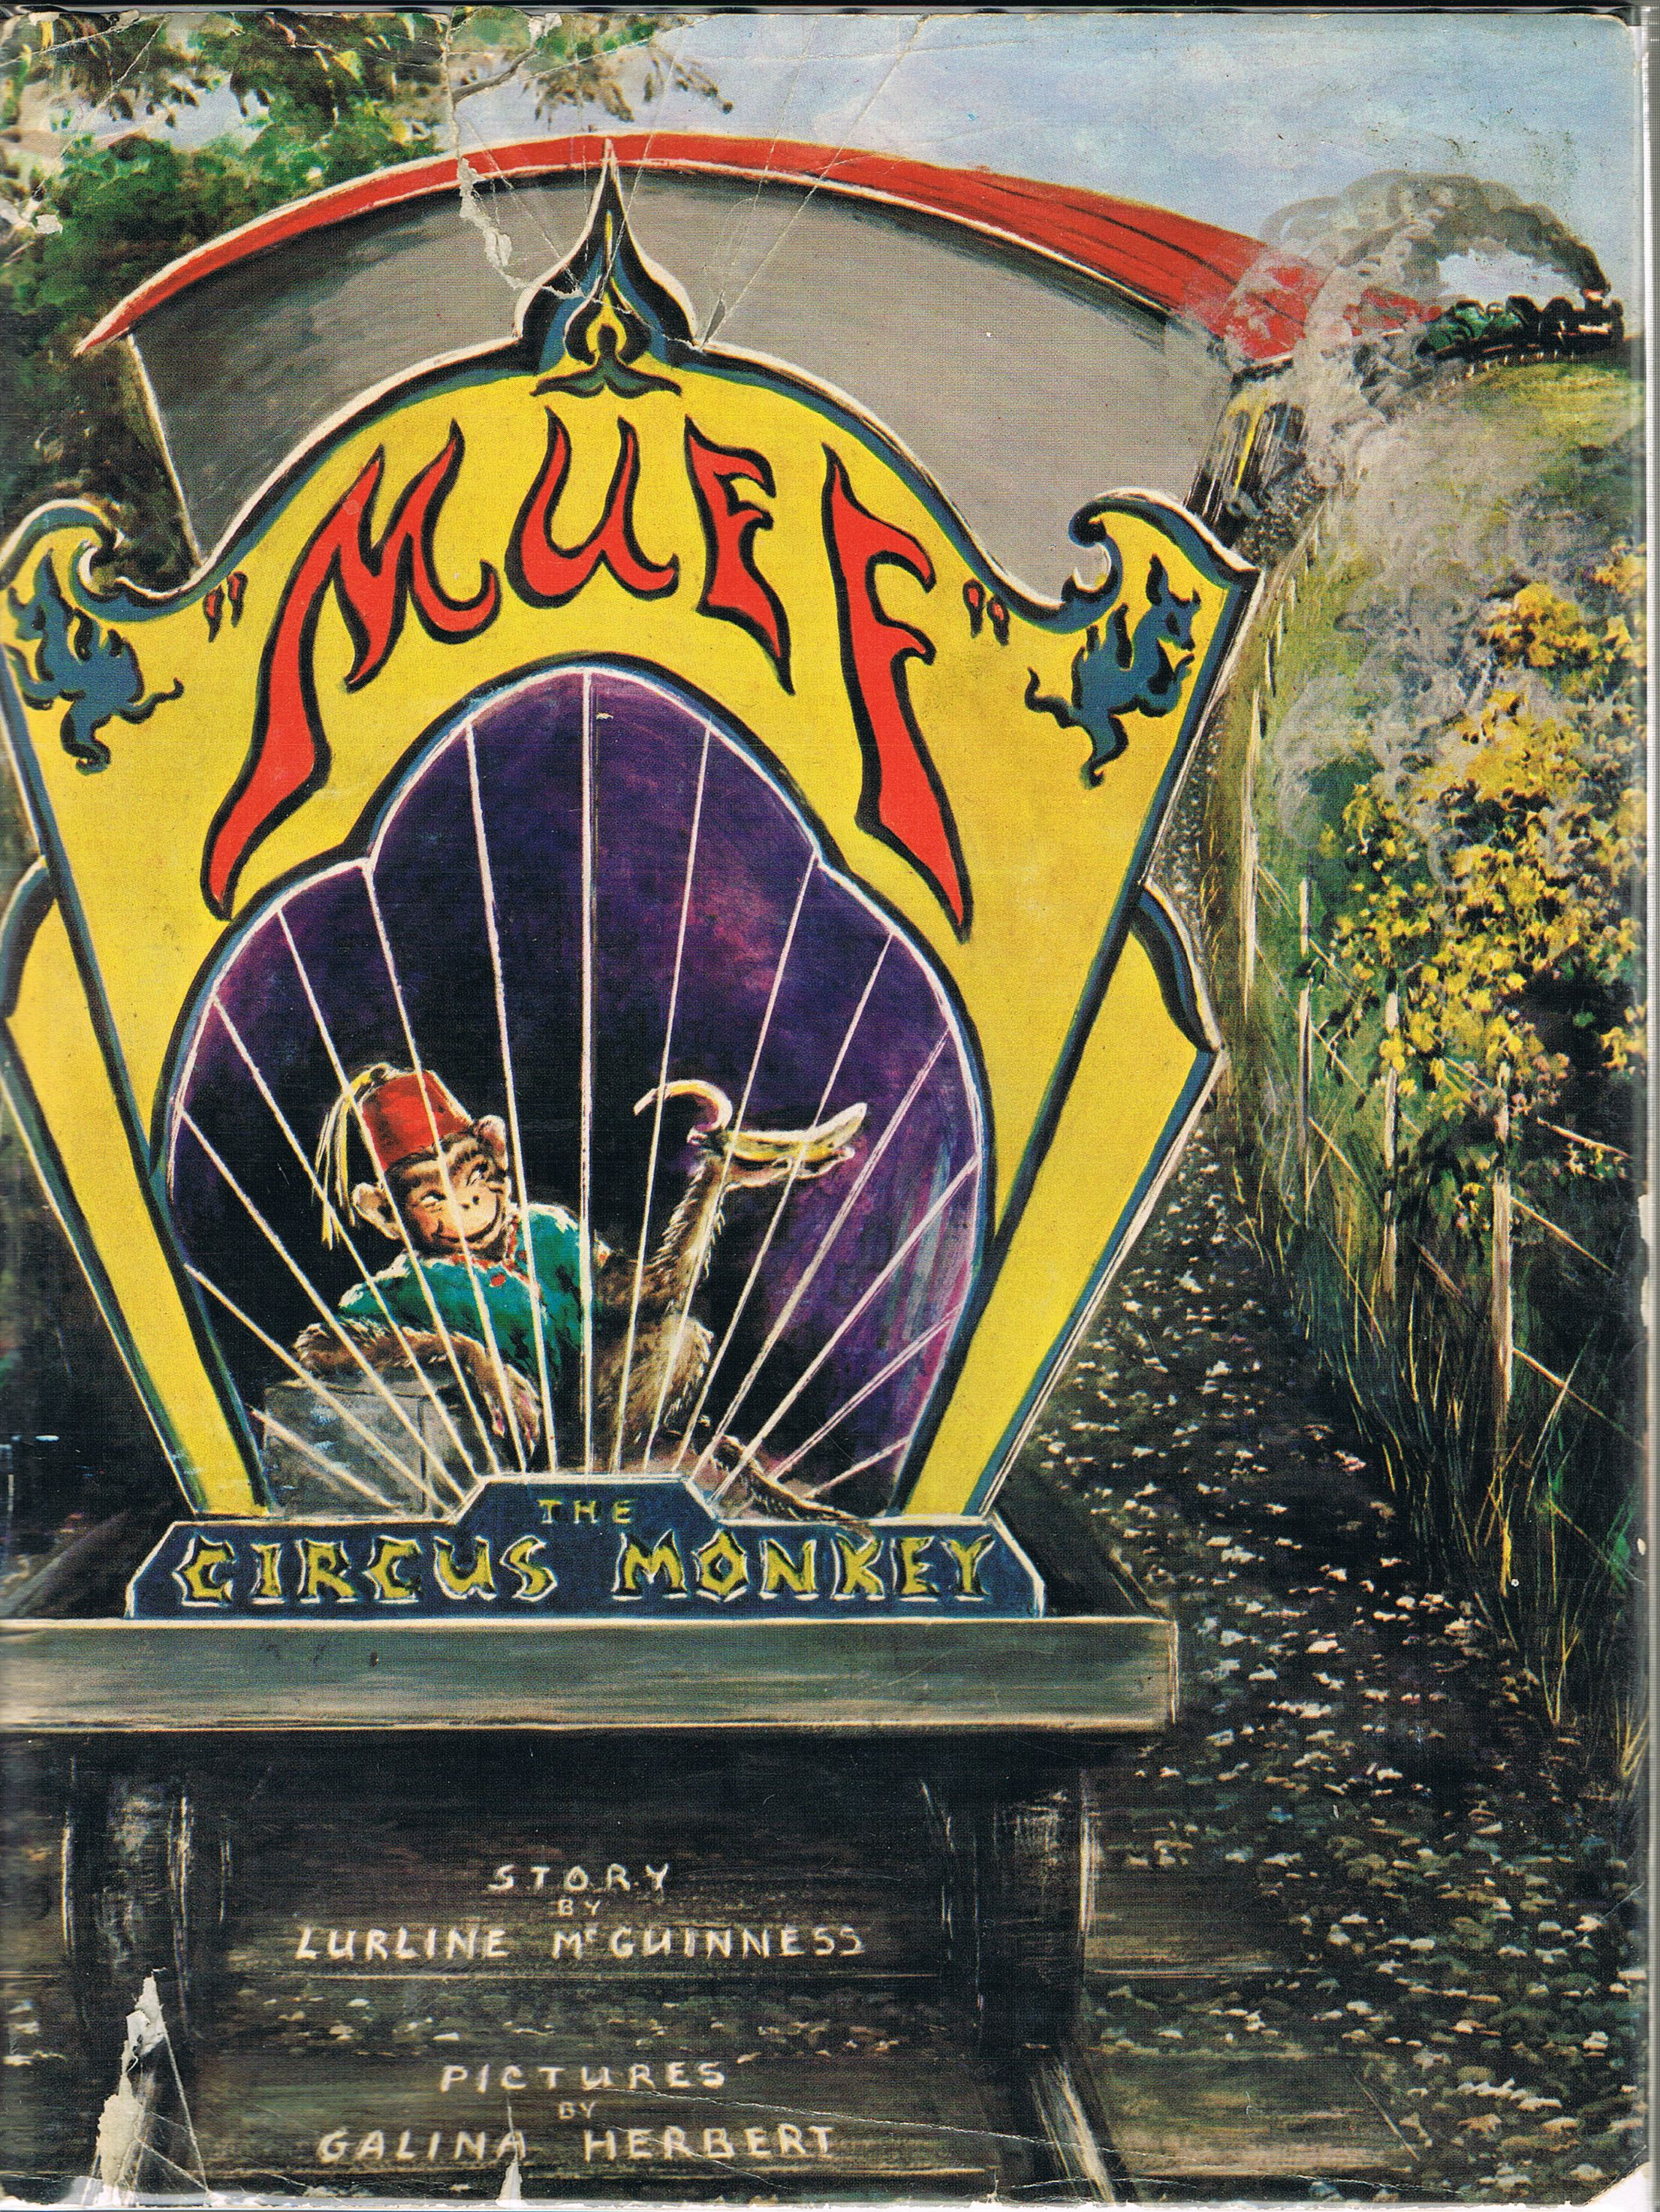 Image for Muff the Circus Monkey